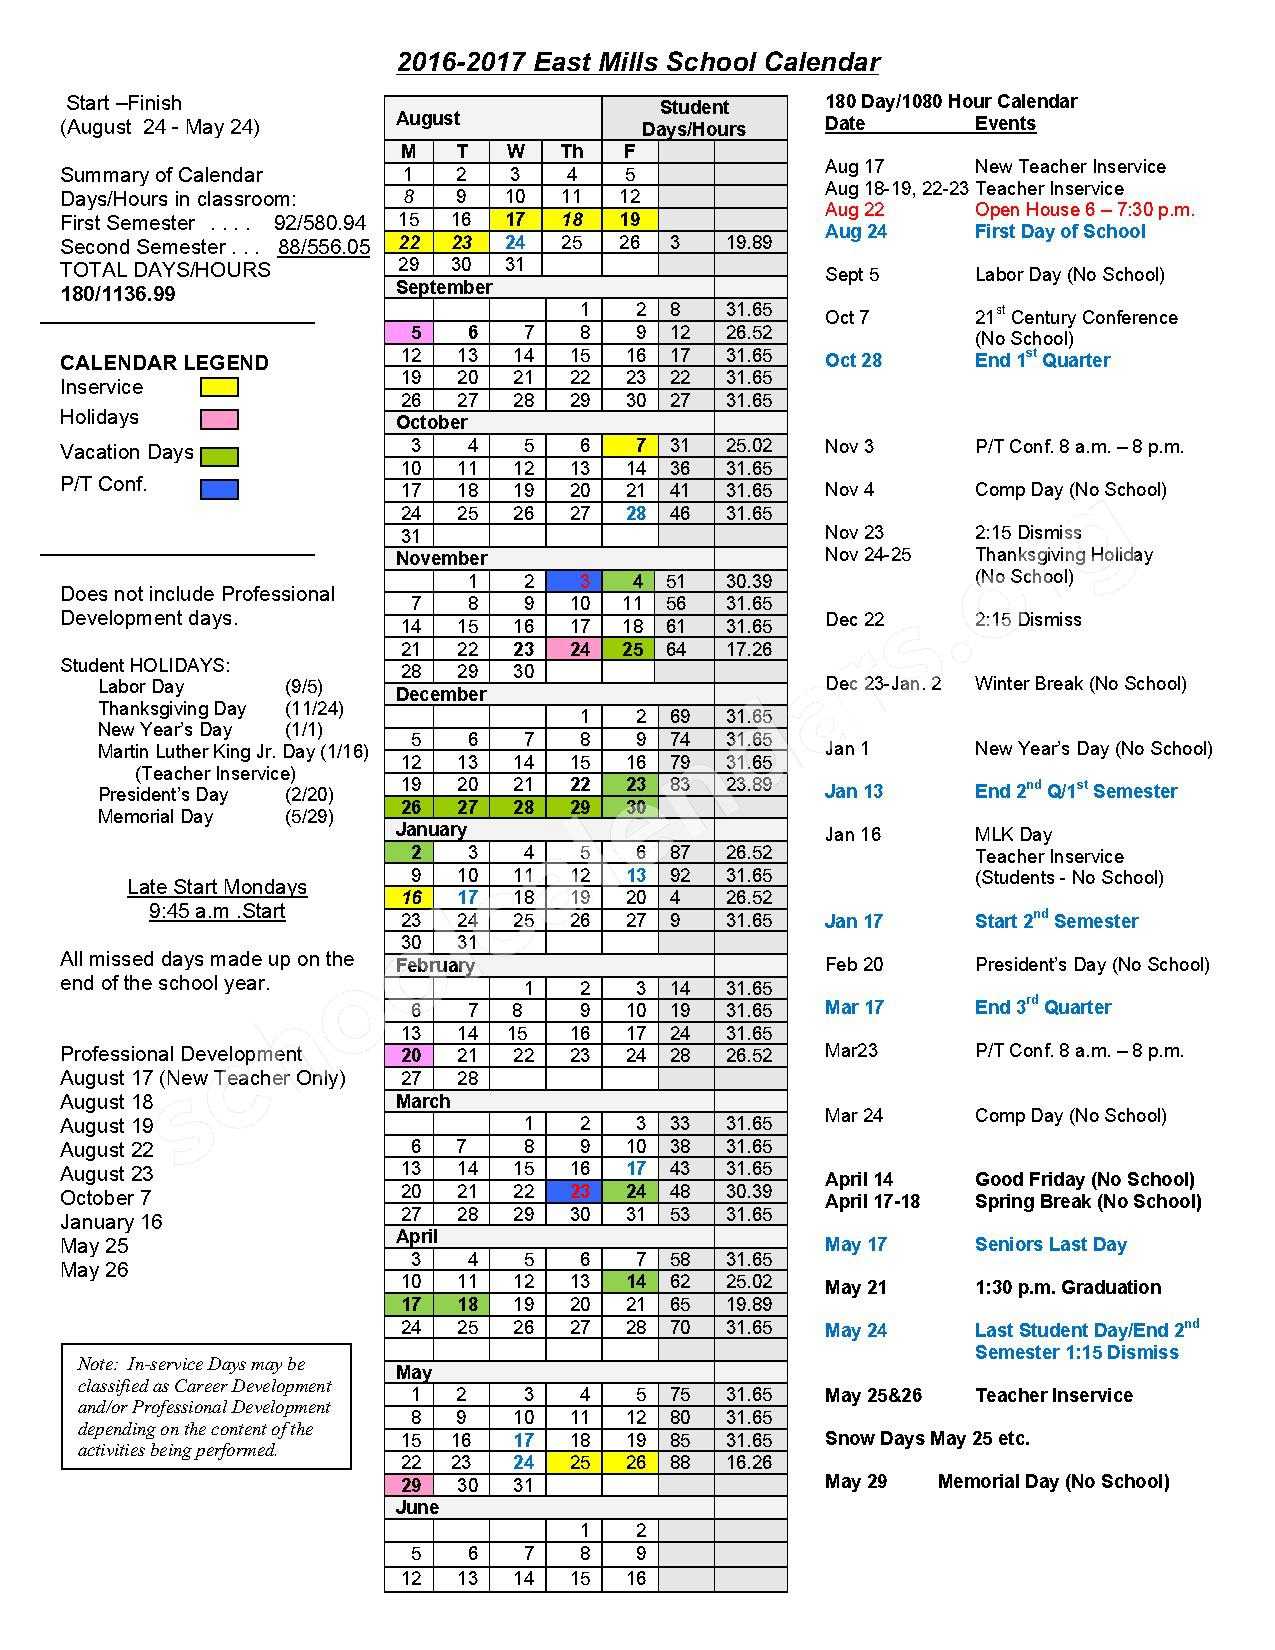 2016 - 2017 School Calendar – East Mills Community School District – page 1